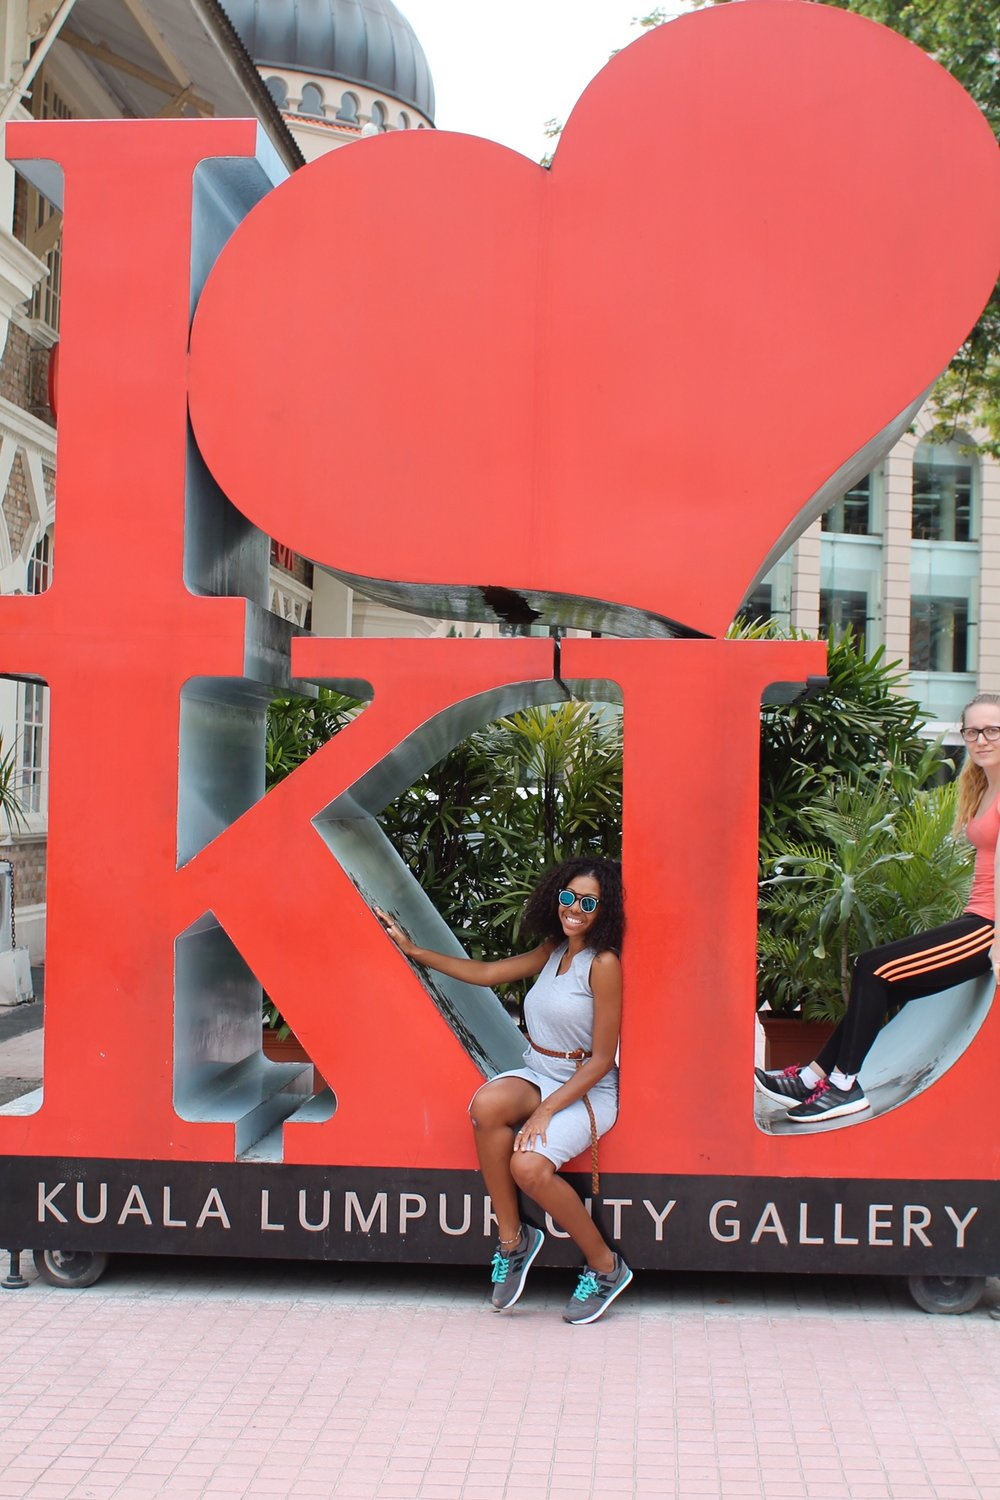 I love KL - I do, I do, I do-ooh